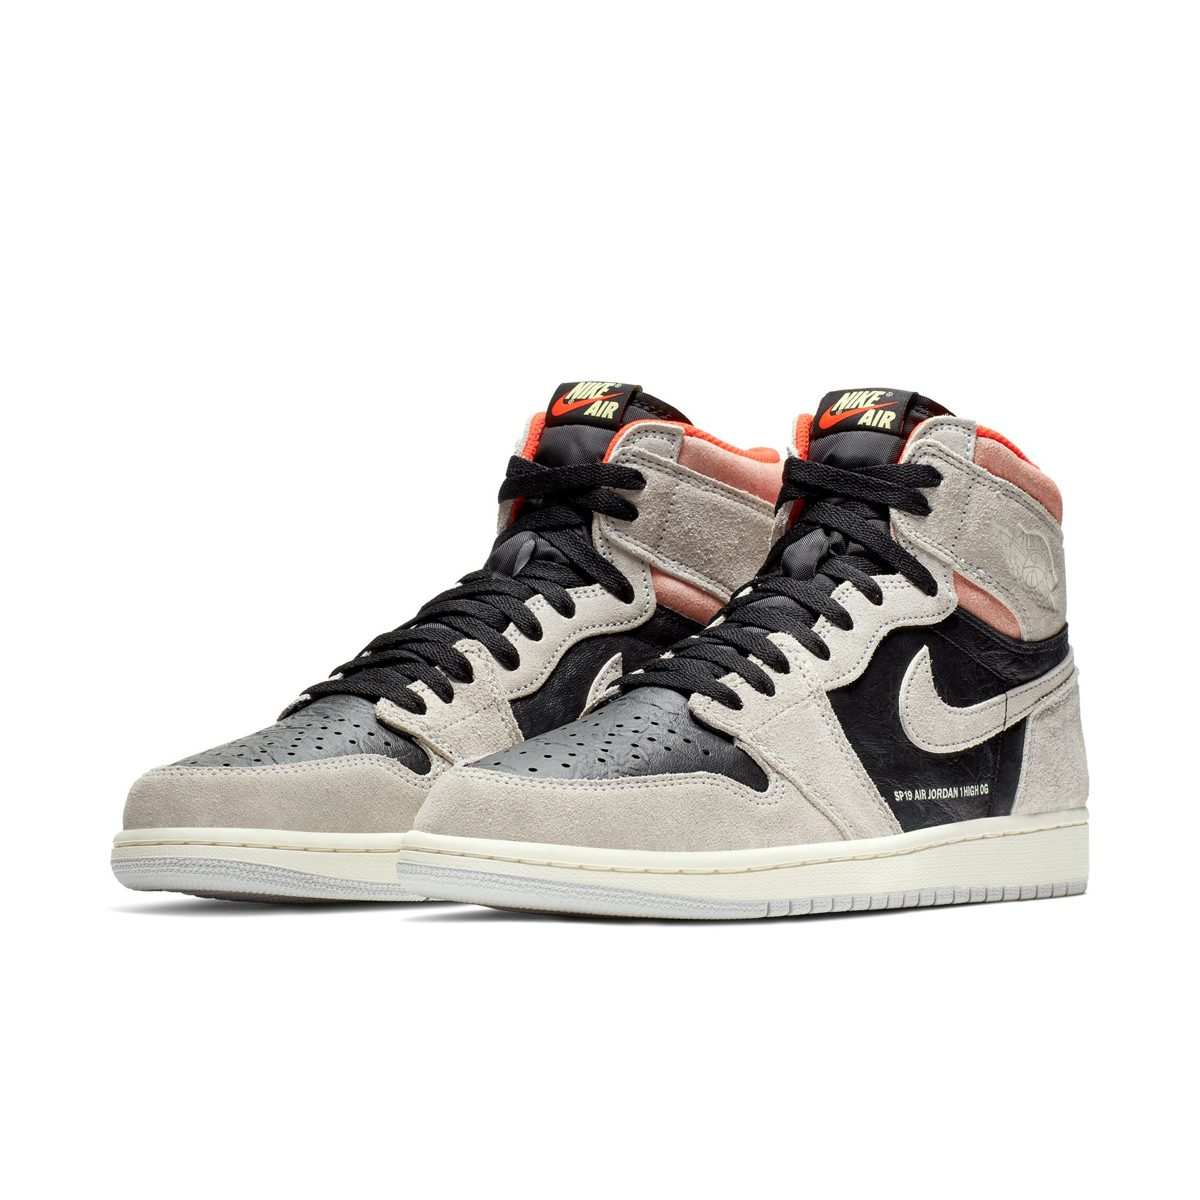 promo code c548c 71873 Where to Buy the Air Jordan 1